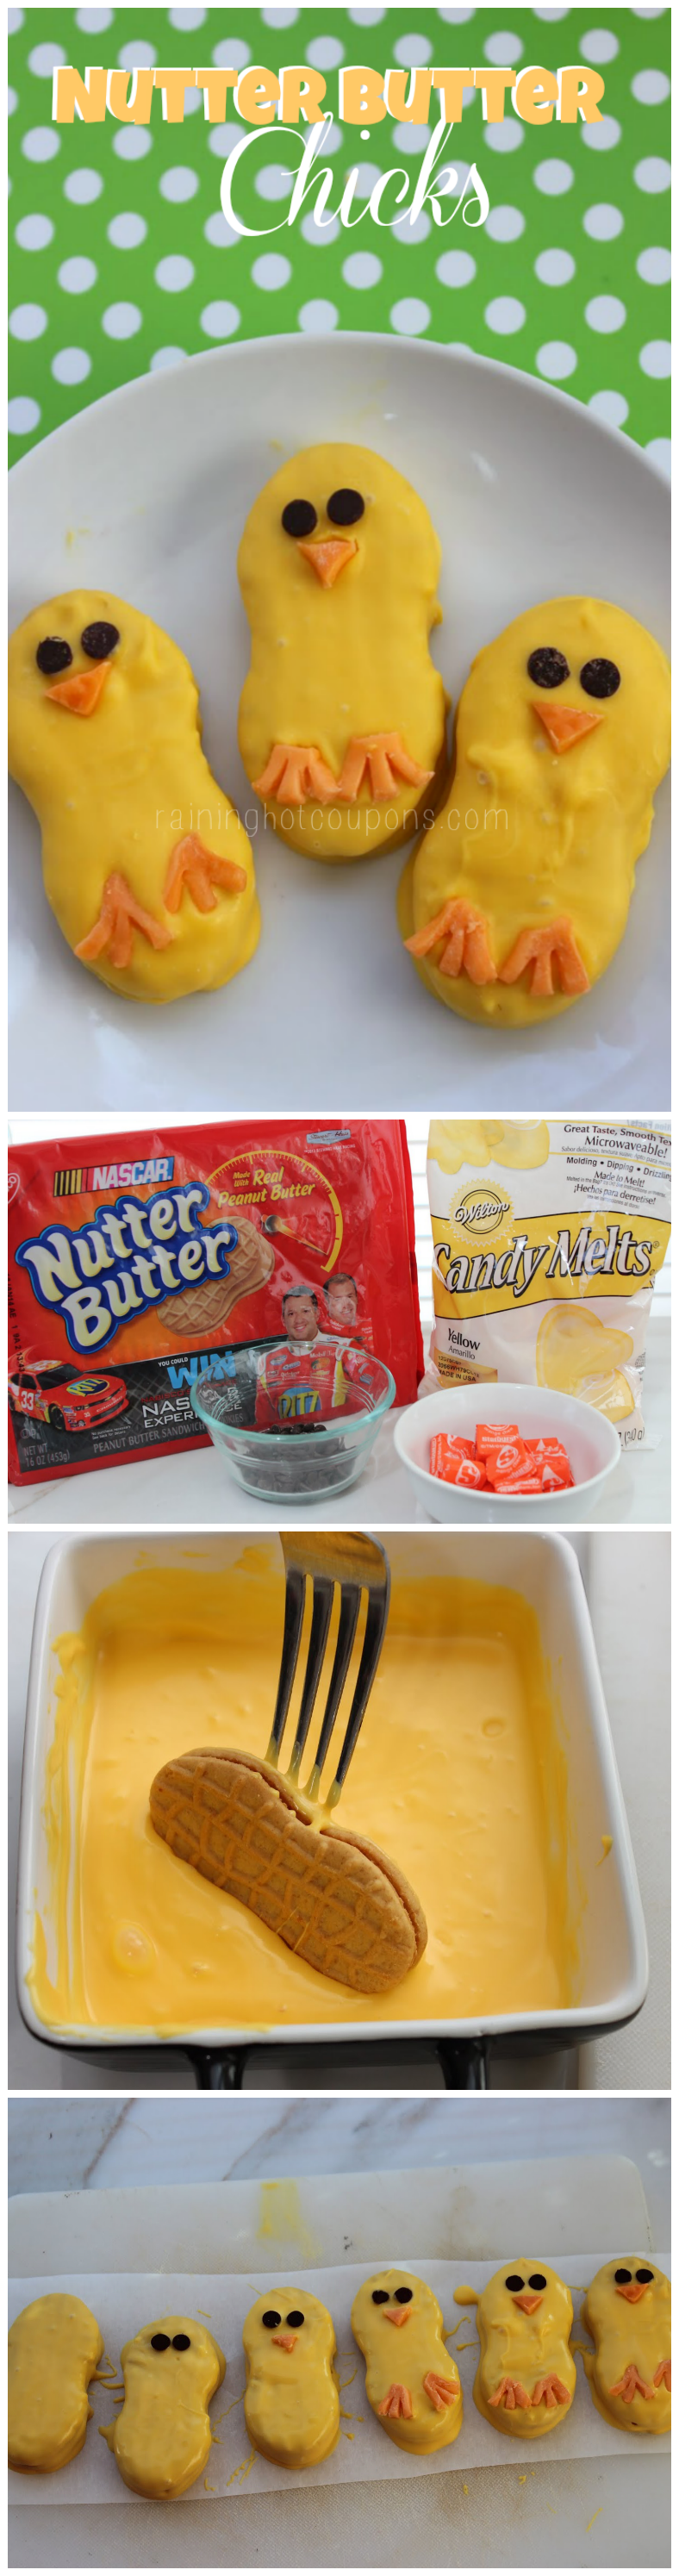 nutter butter chicks collage.png